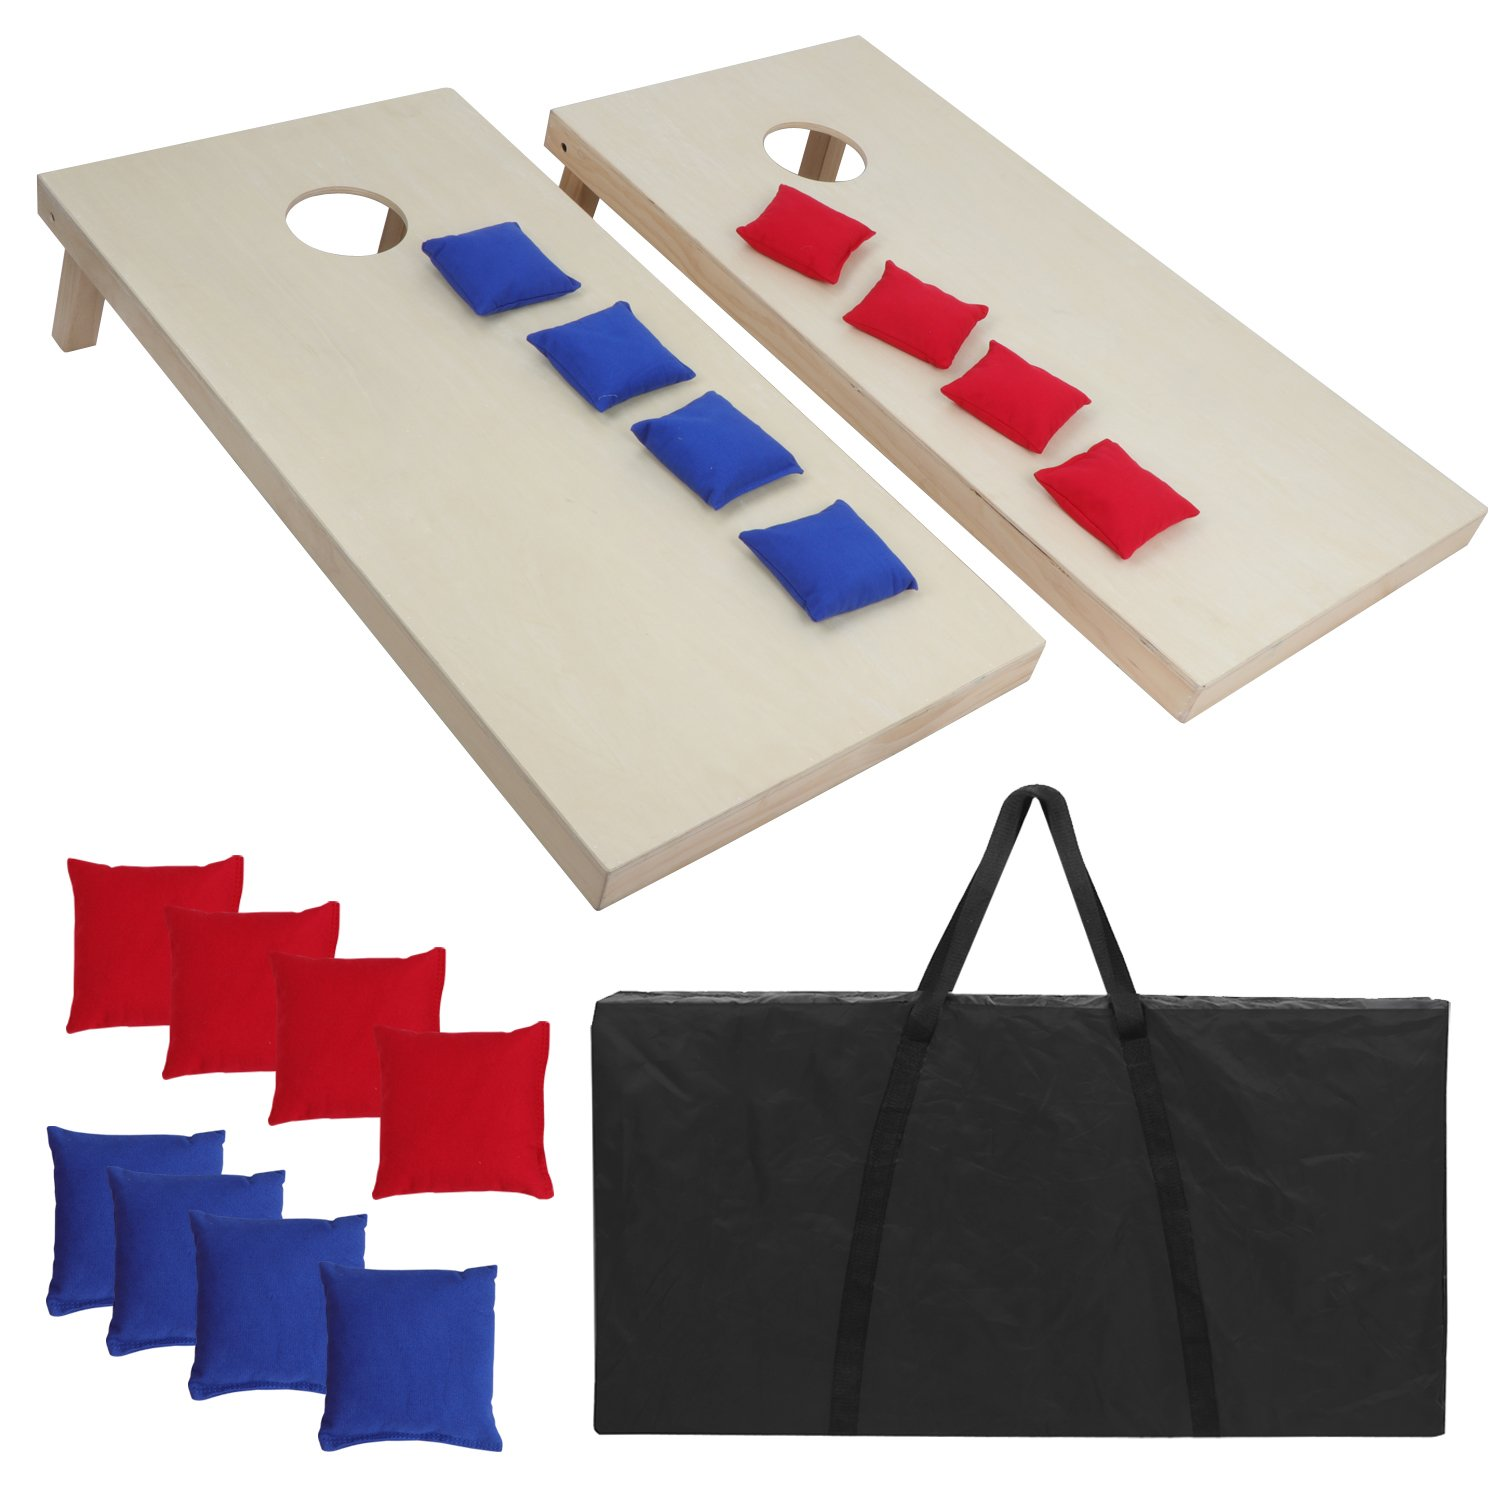 ZENY Portable Solid Wood Cornhole Bean Bag Toss Game Set Regulation Size 4ft x 2ft Cornhole Boards & 8 Bags Playset Backyard Lawn Corn Hole Outdoor Game Set by ZENY